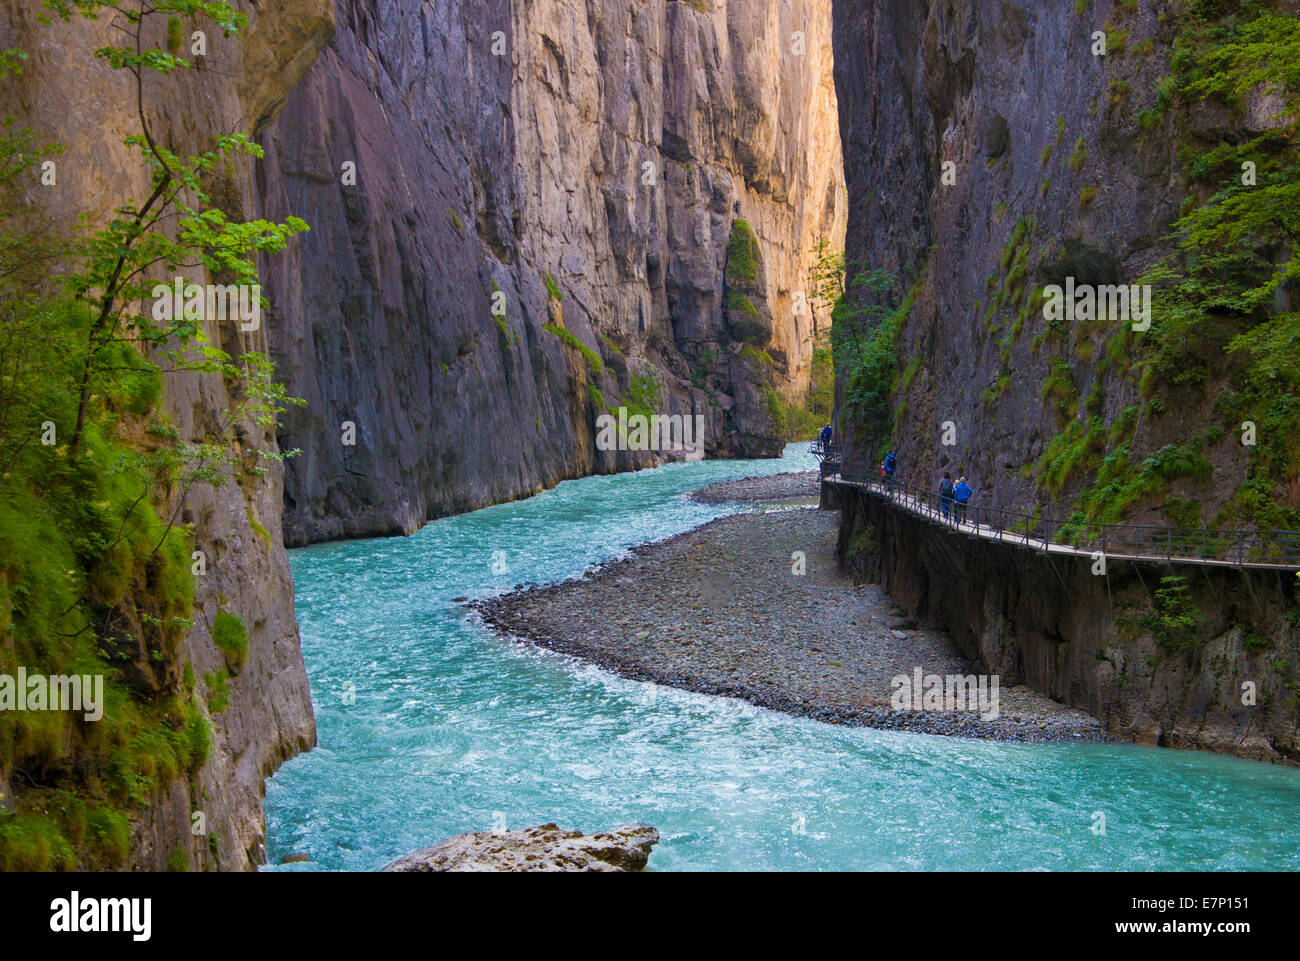 Aare, Gorge, canyon, Switzerland, Europe, geology, green, nature, park, river, rocks, spring, touristic, travel, - Stock Image